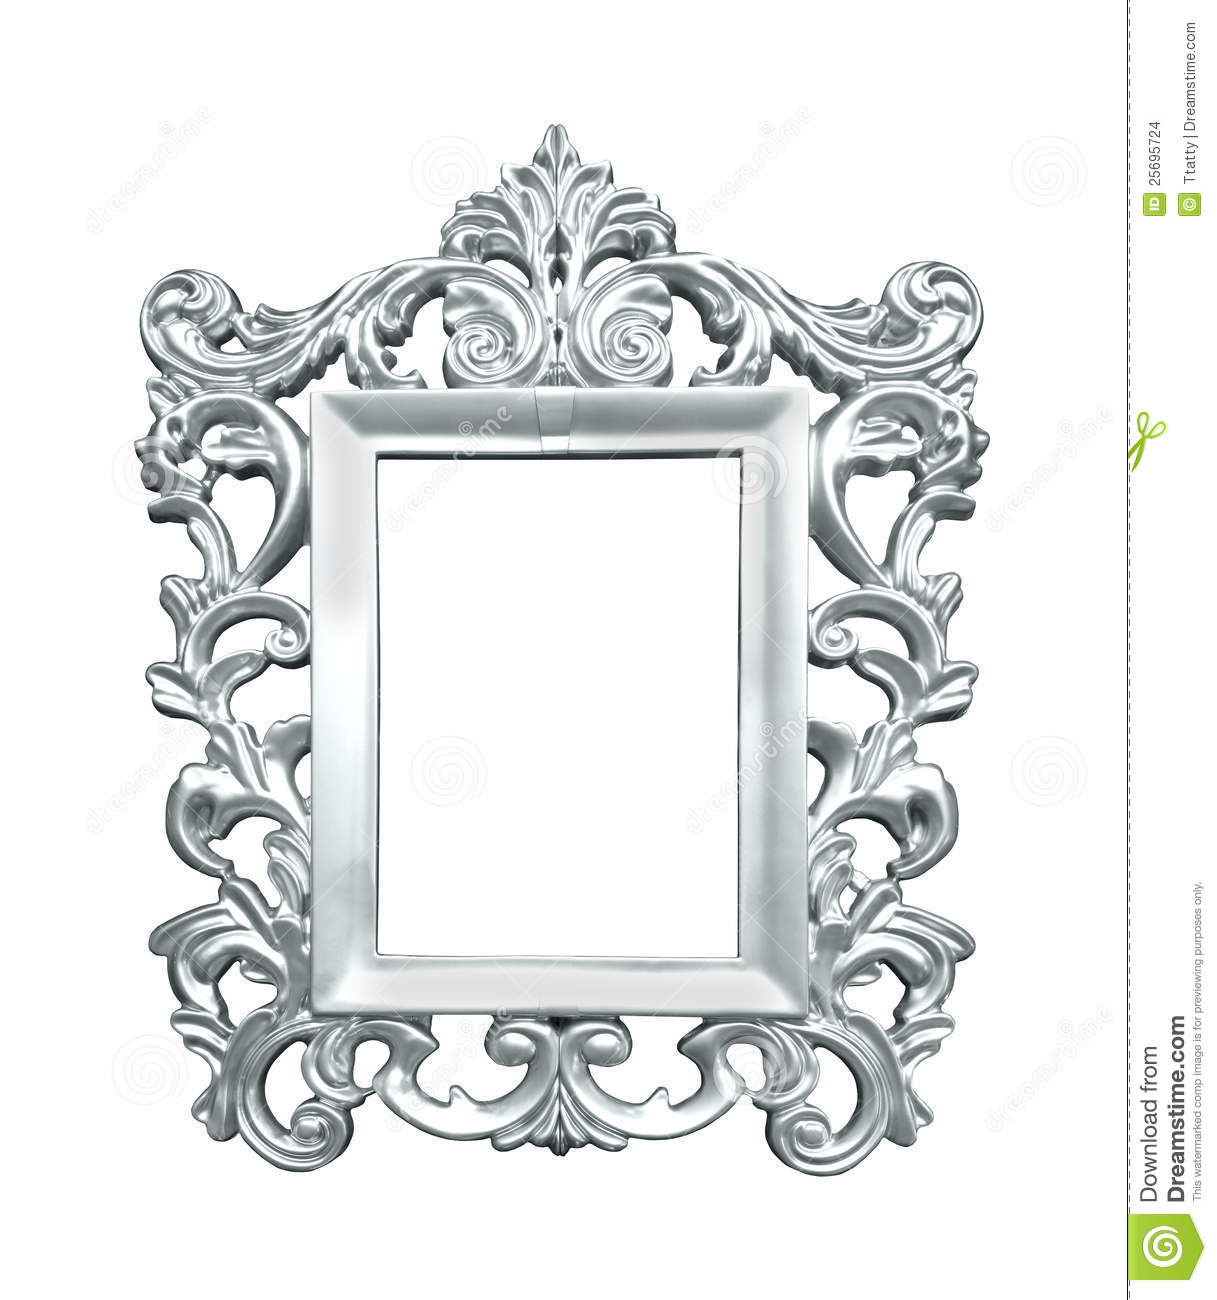 Silver vintage frame stock photo. Image of cutout, vintage - 25695724